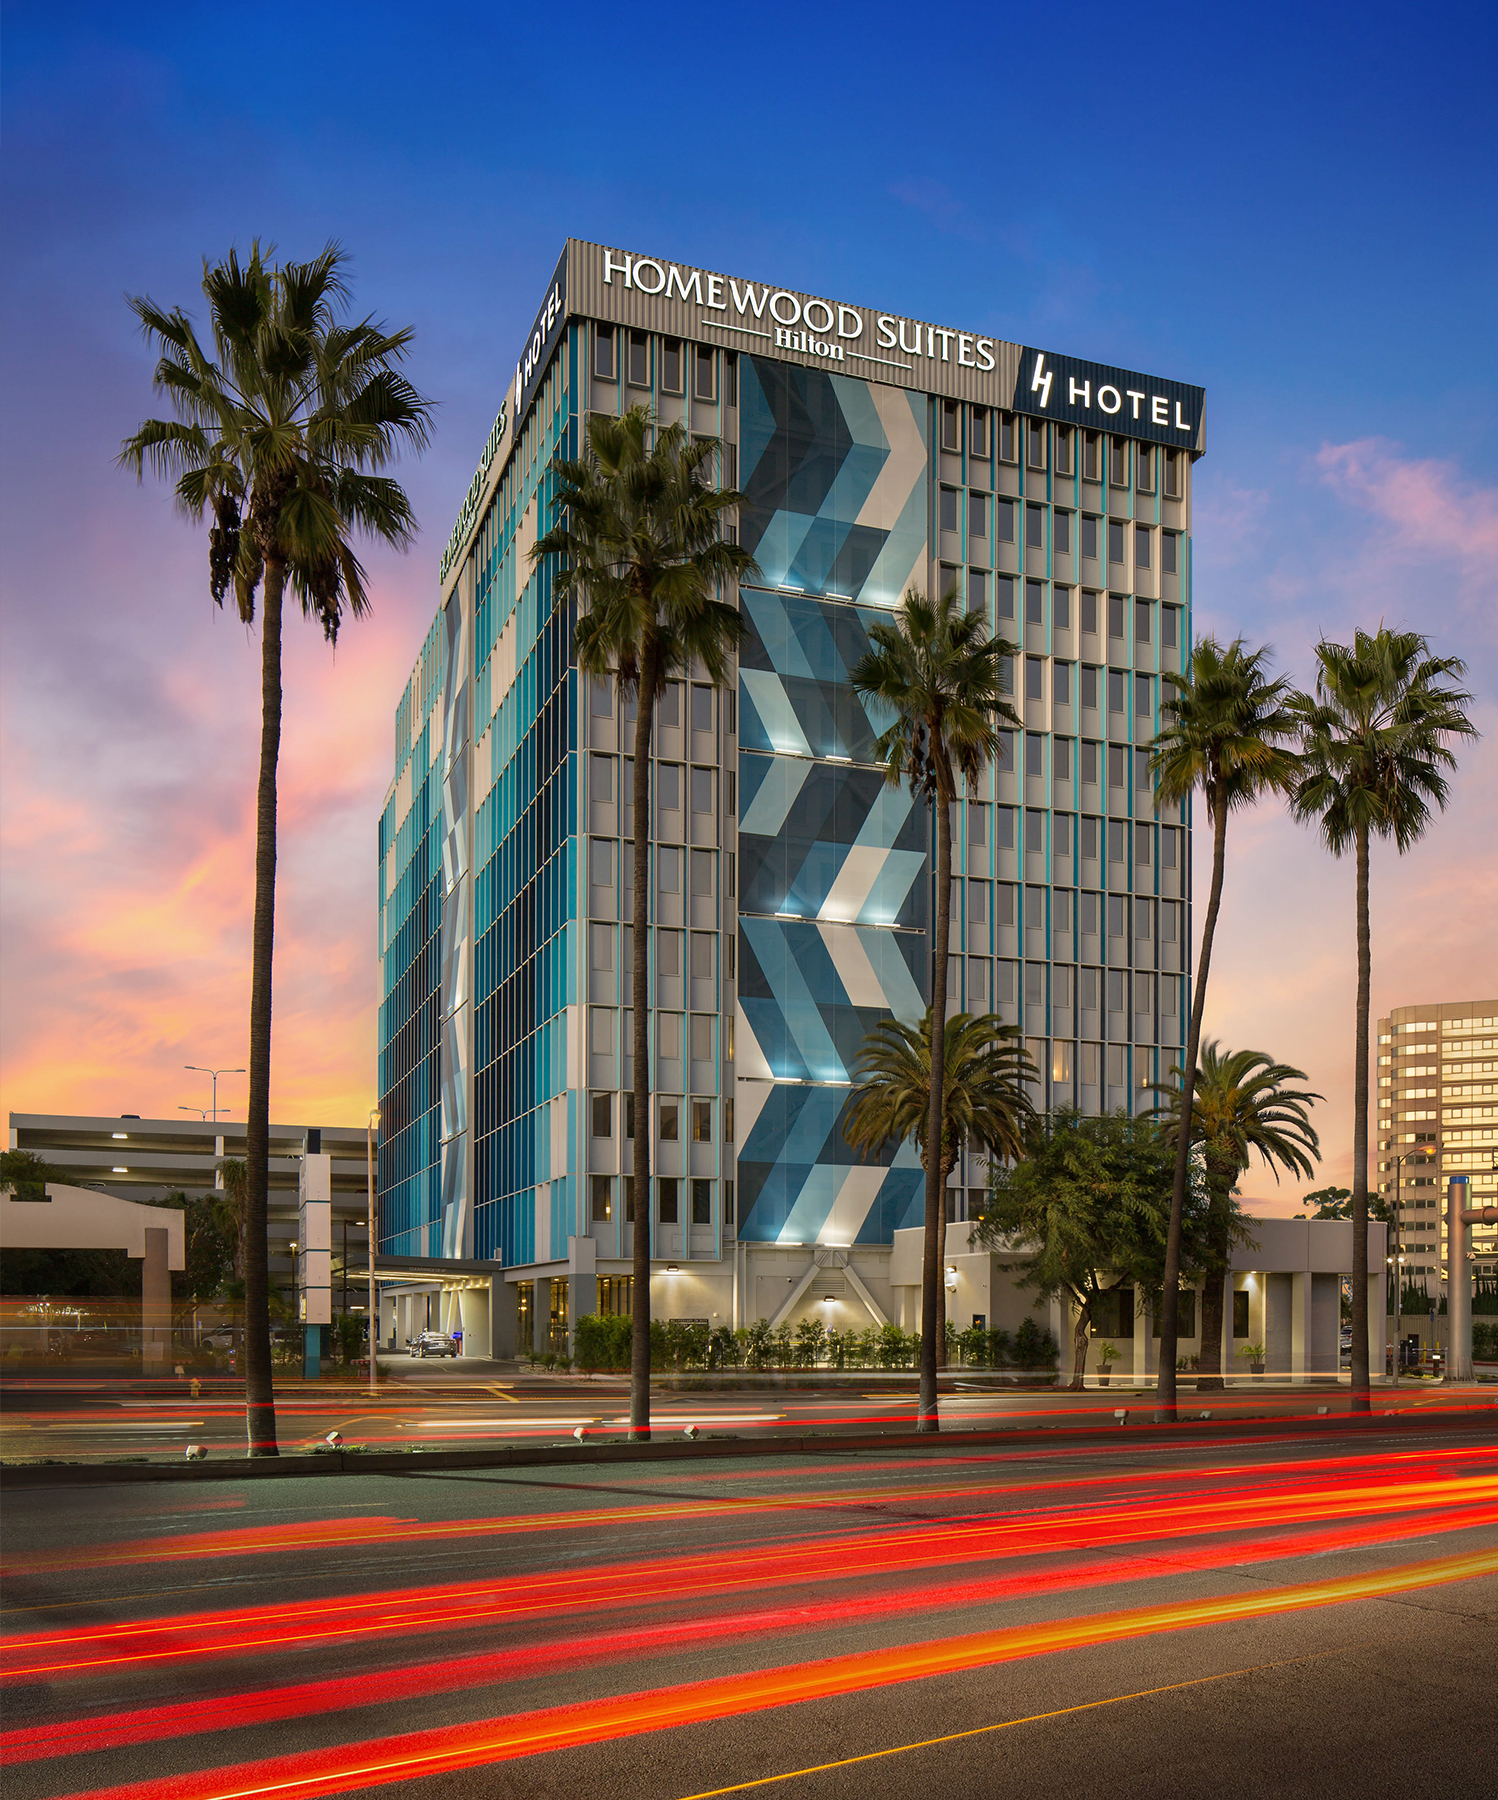 R.D. Olson Construction completed H Hotel, a 12-story, 260,000-square-foot project located adjacent to Los Angeles International Airport (LAX).